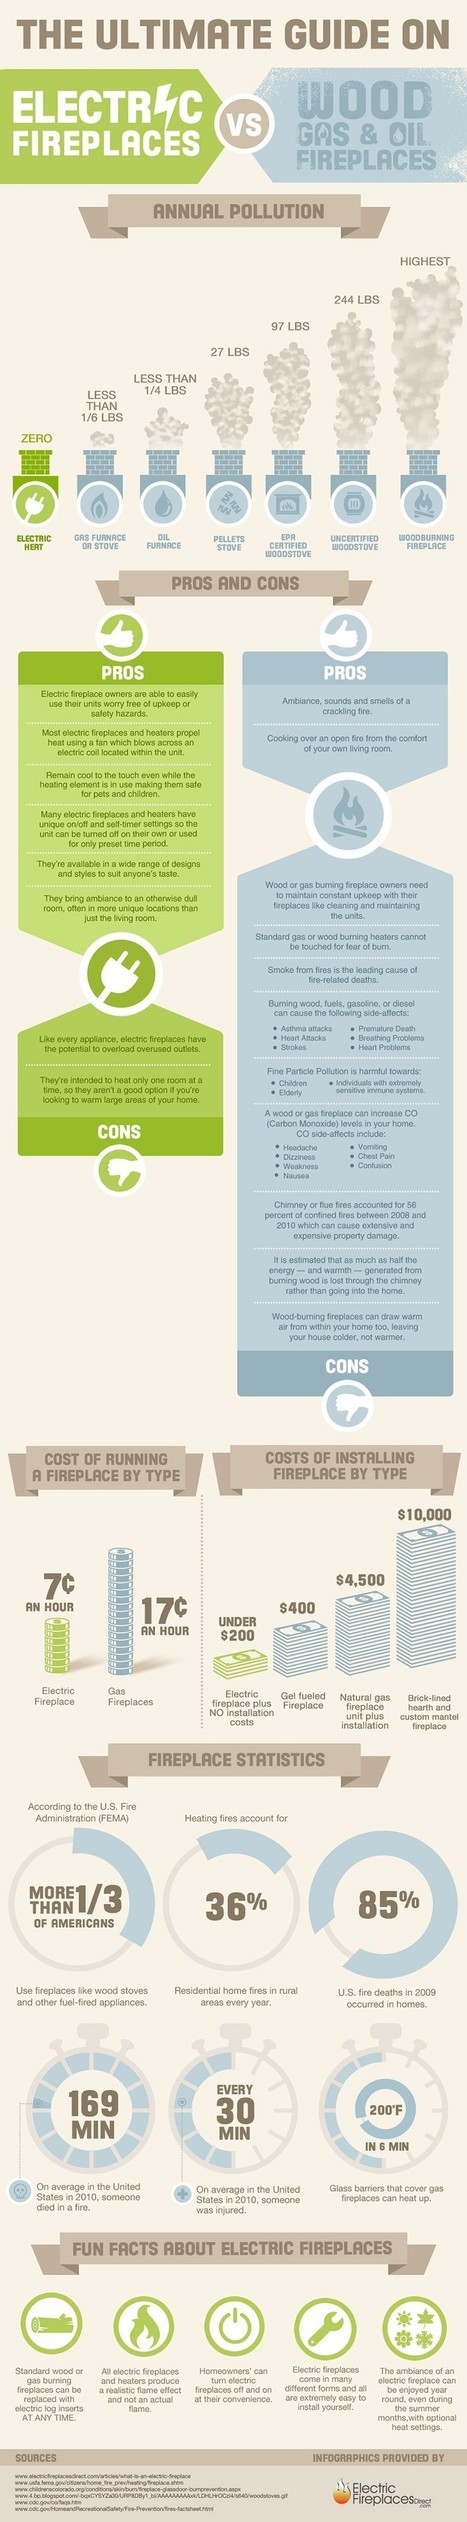 Electric Fireplaces VS Wood Gas & Oil Fireplaces | Infographic | All Infographics | Scoop.it